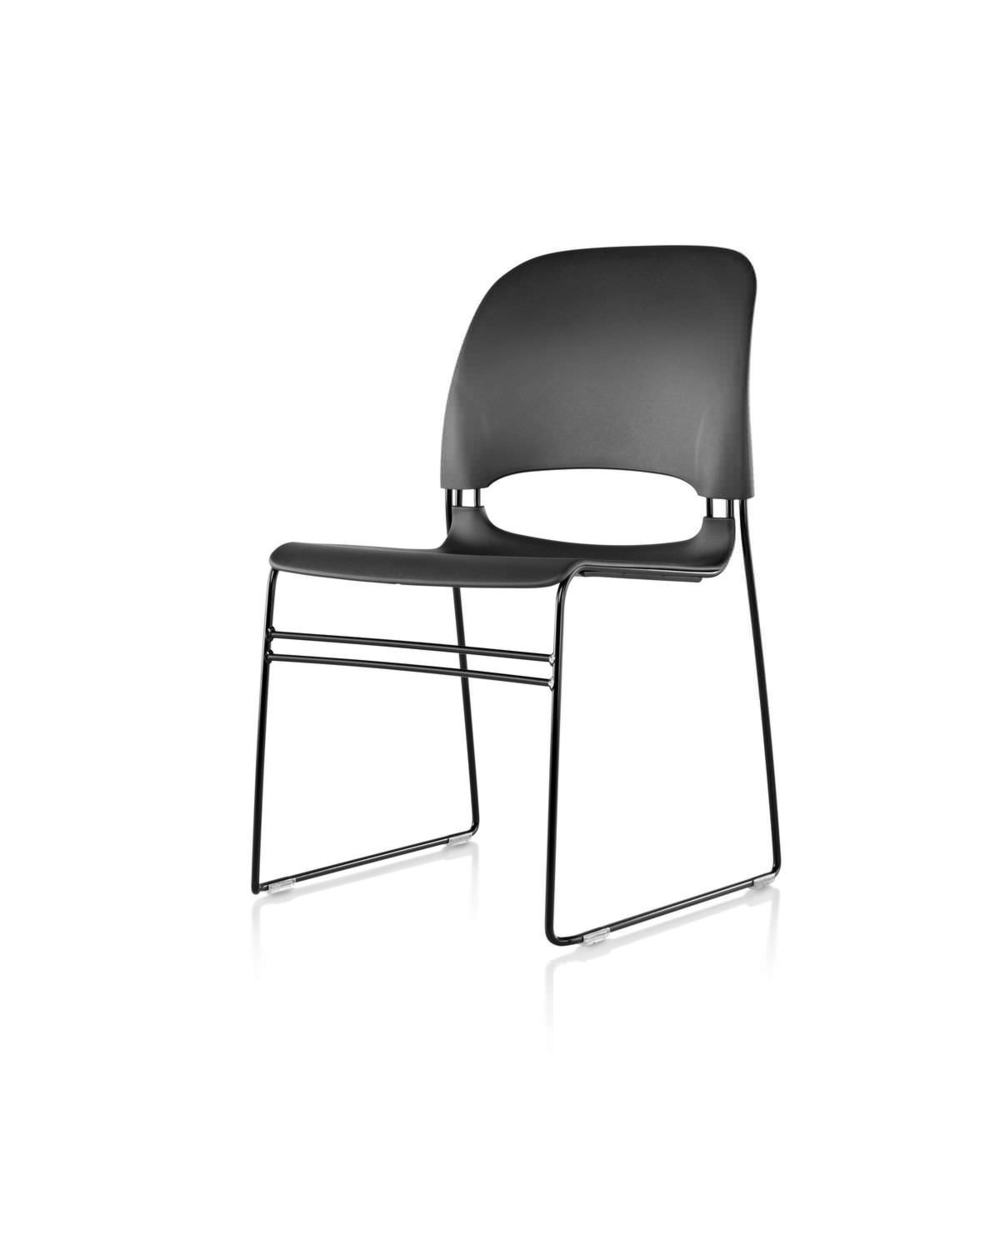 visitor-chair-stackable-sled-base-4241-7975735.jpg